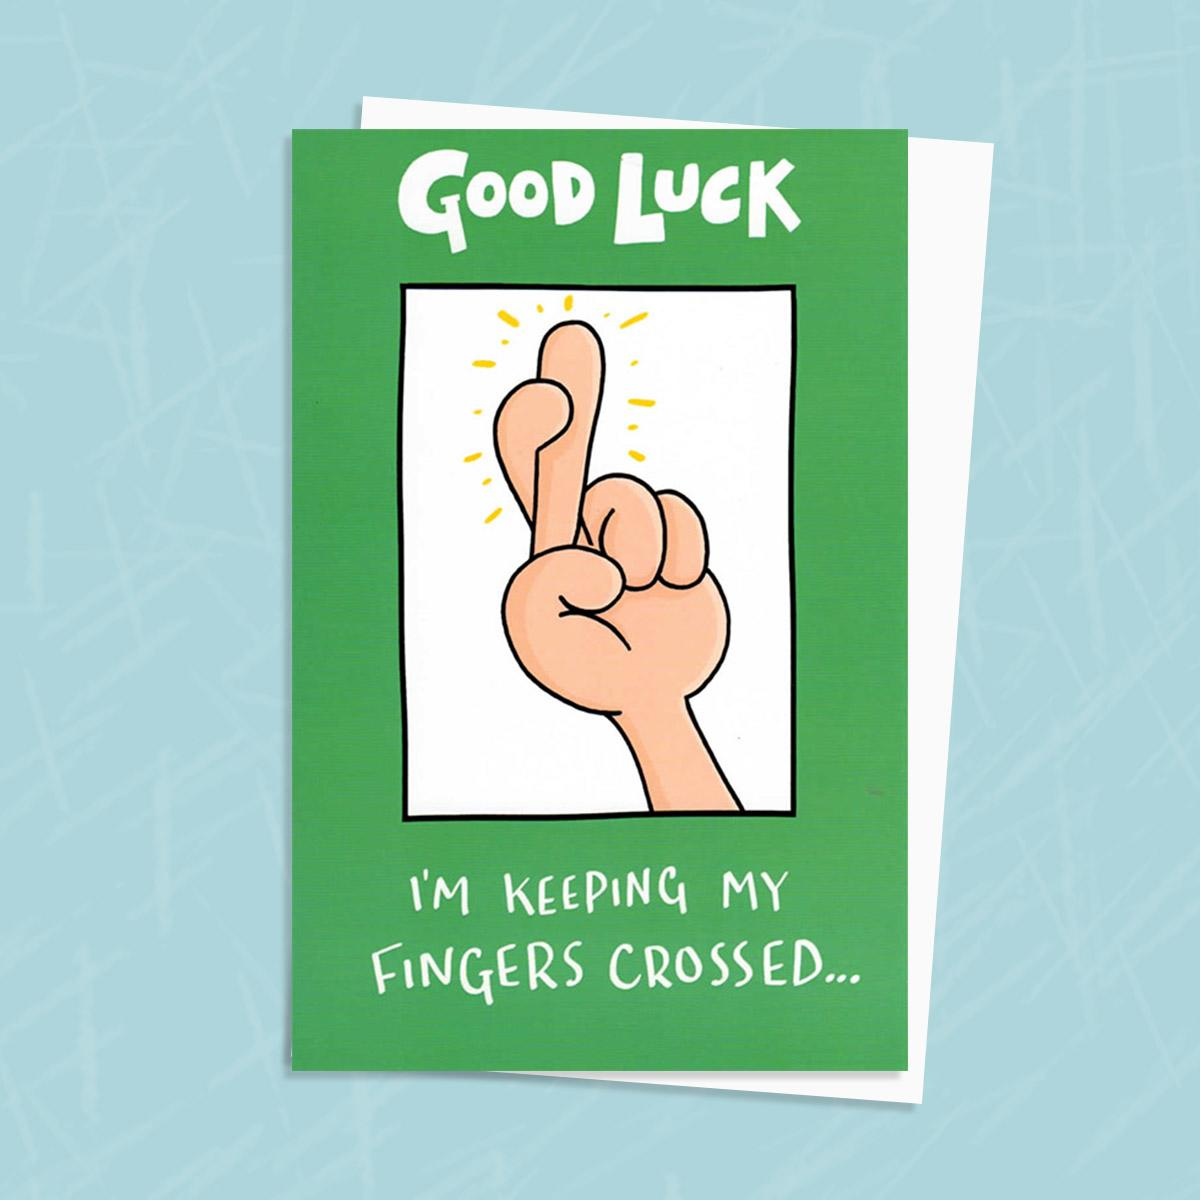 Big News Card Best Wishes Card Wishing You Well Card Fingers Crossed Support Card \u2014 Good Luck Card